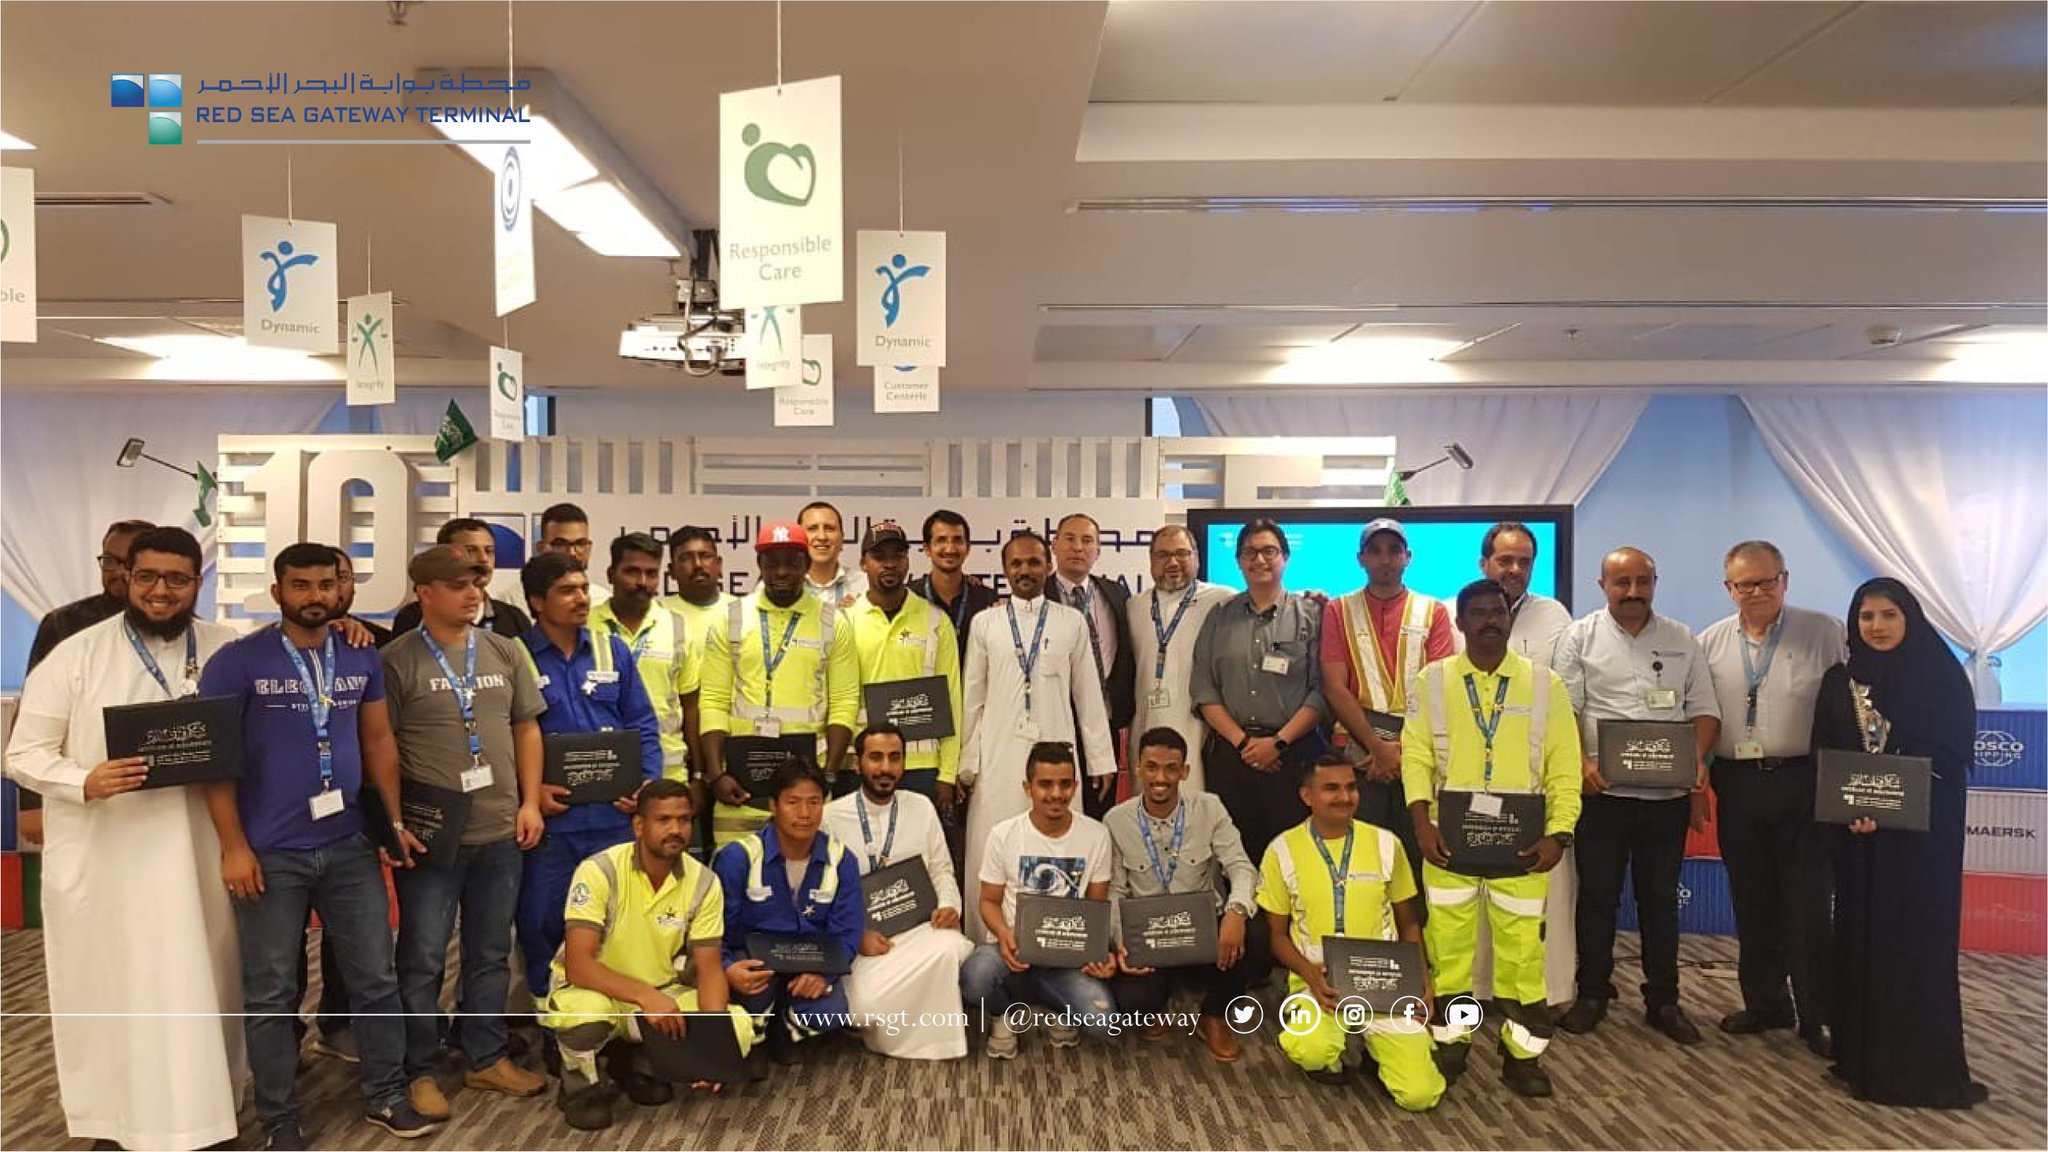 Red Sea Gateway Terminal On Twitter Congratulations To Rsgt Members Who Have Honored During Employee Of The Month Celebration We Wish Them All The Best And Continued Success Https T Co Zzwlc41a2e